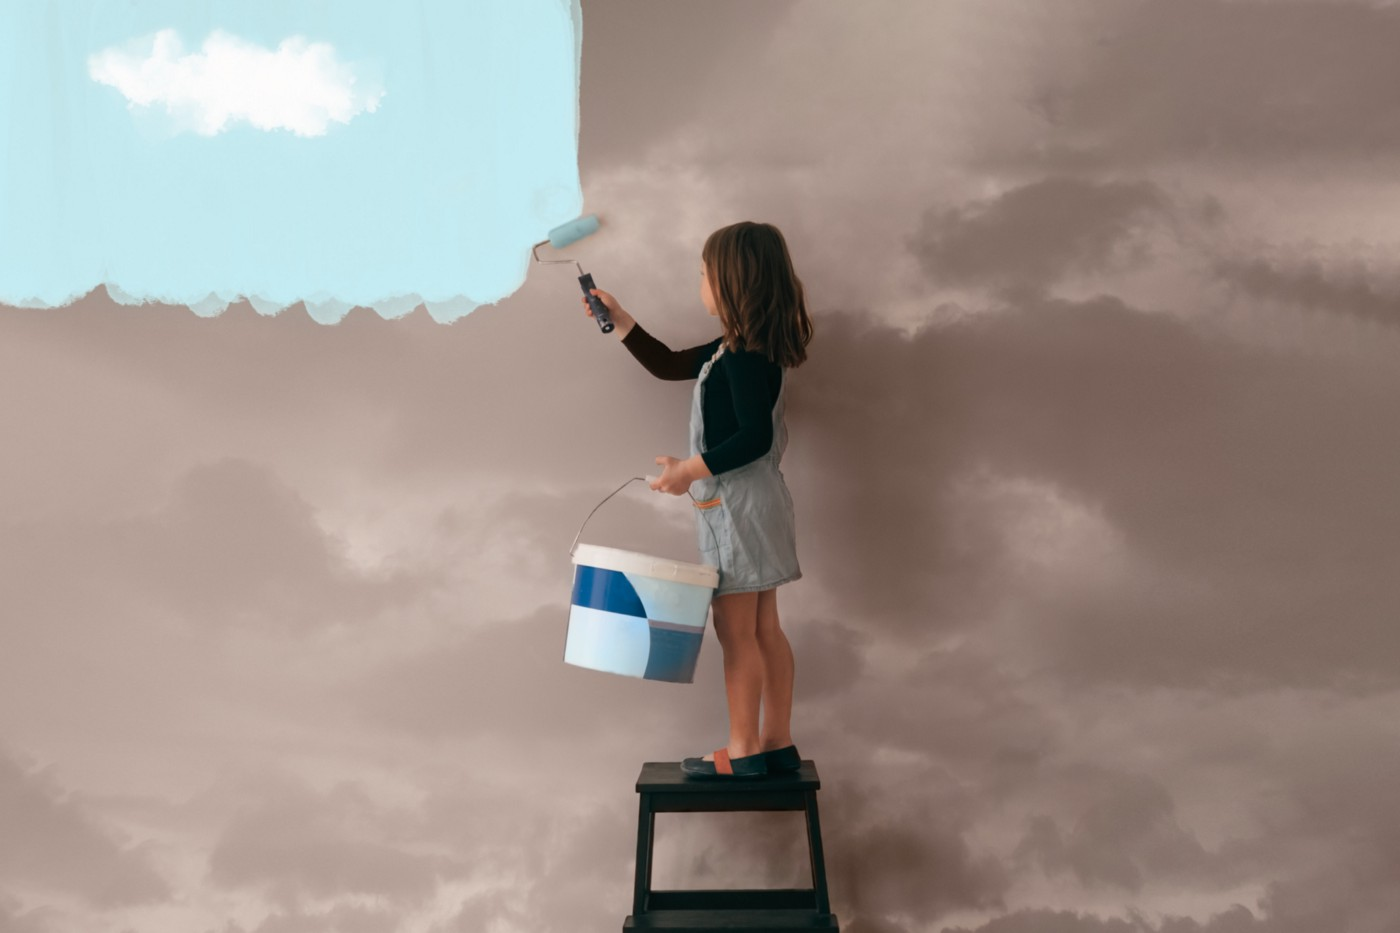 A girl paints the wall from a cloudy a clear blue sky.